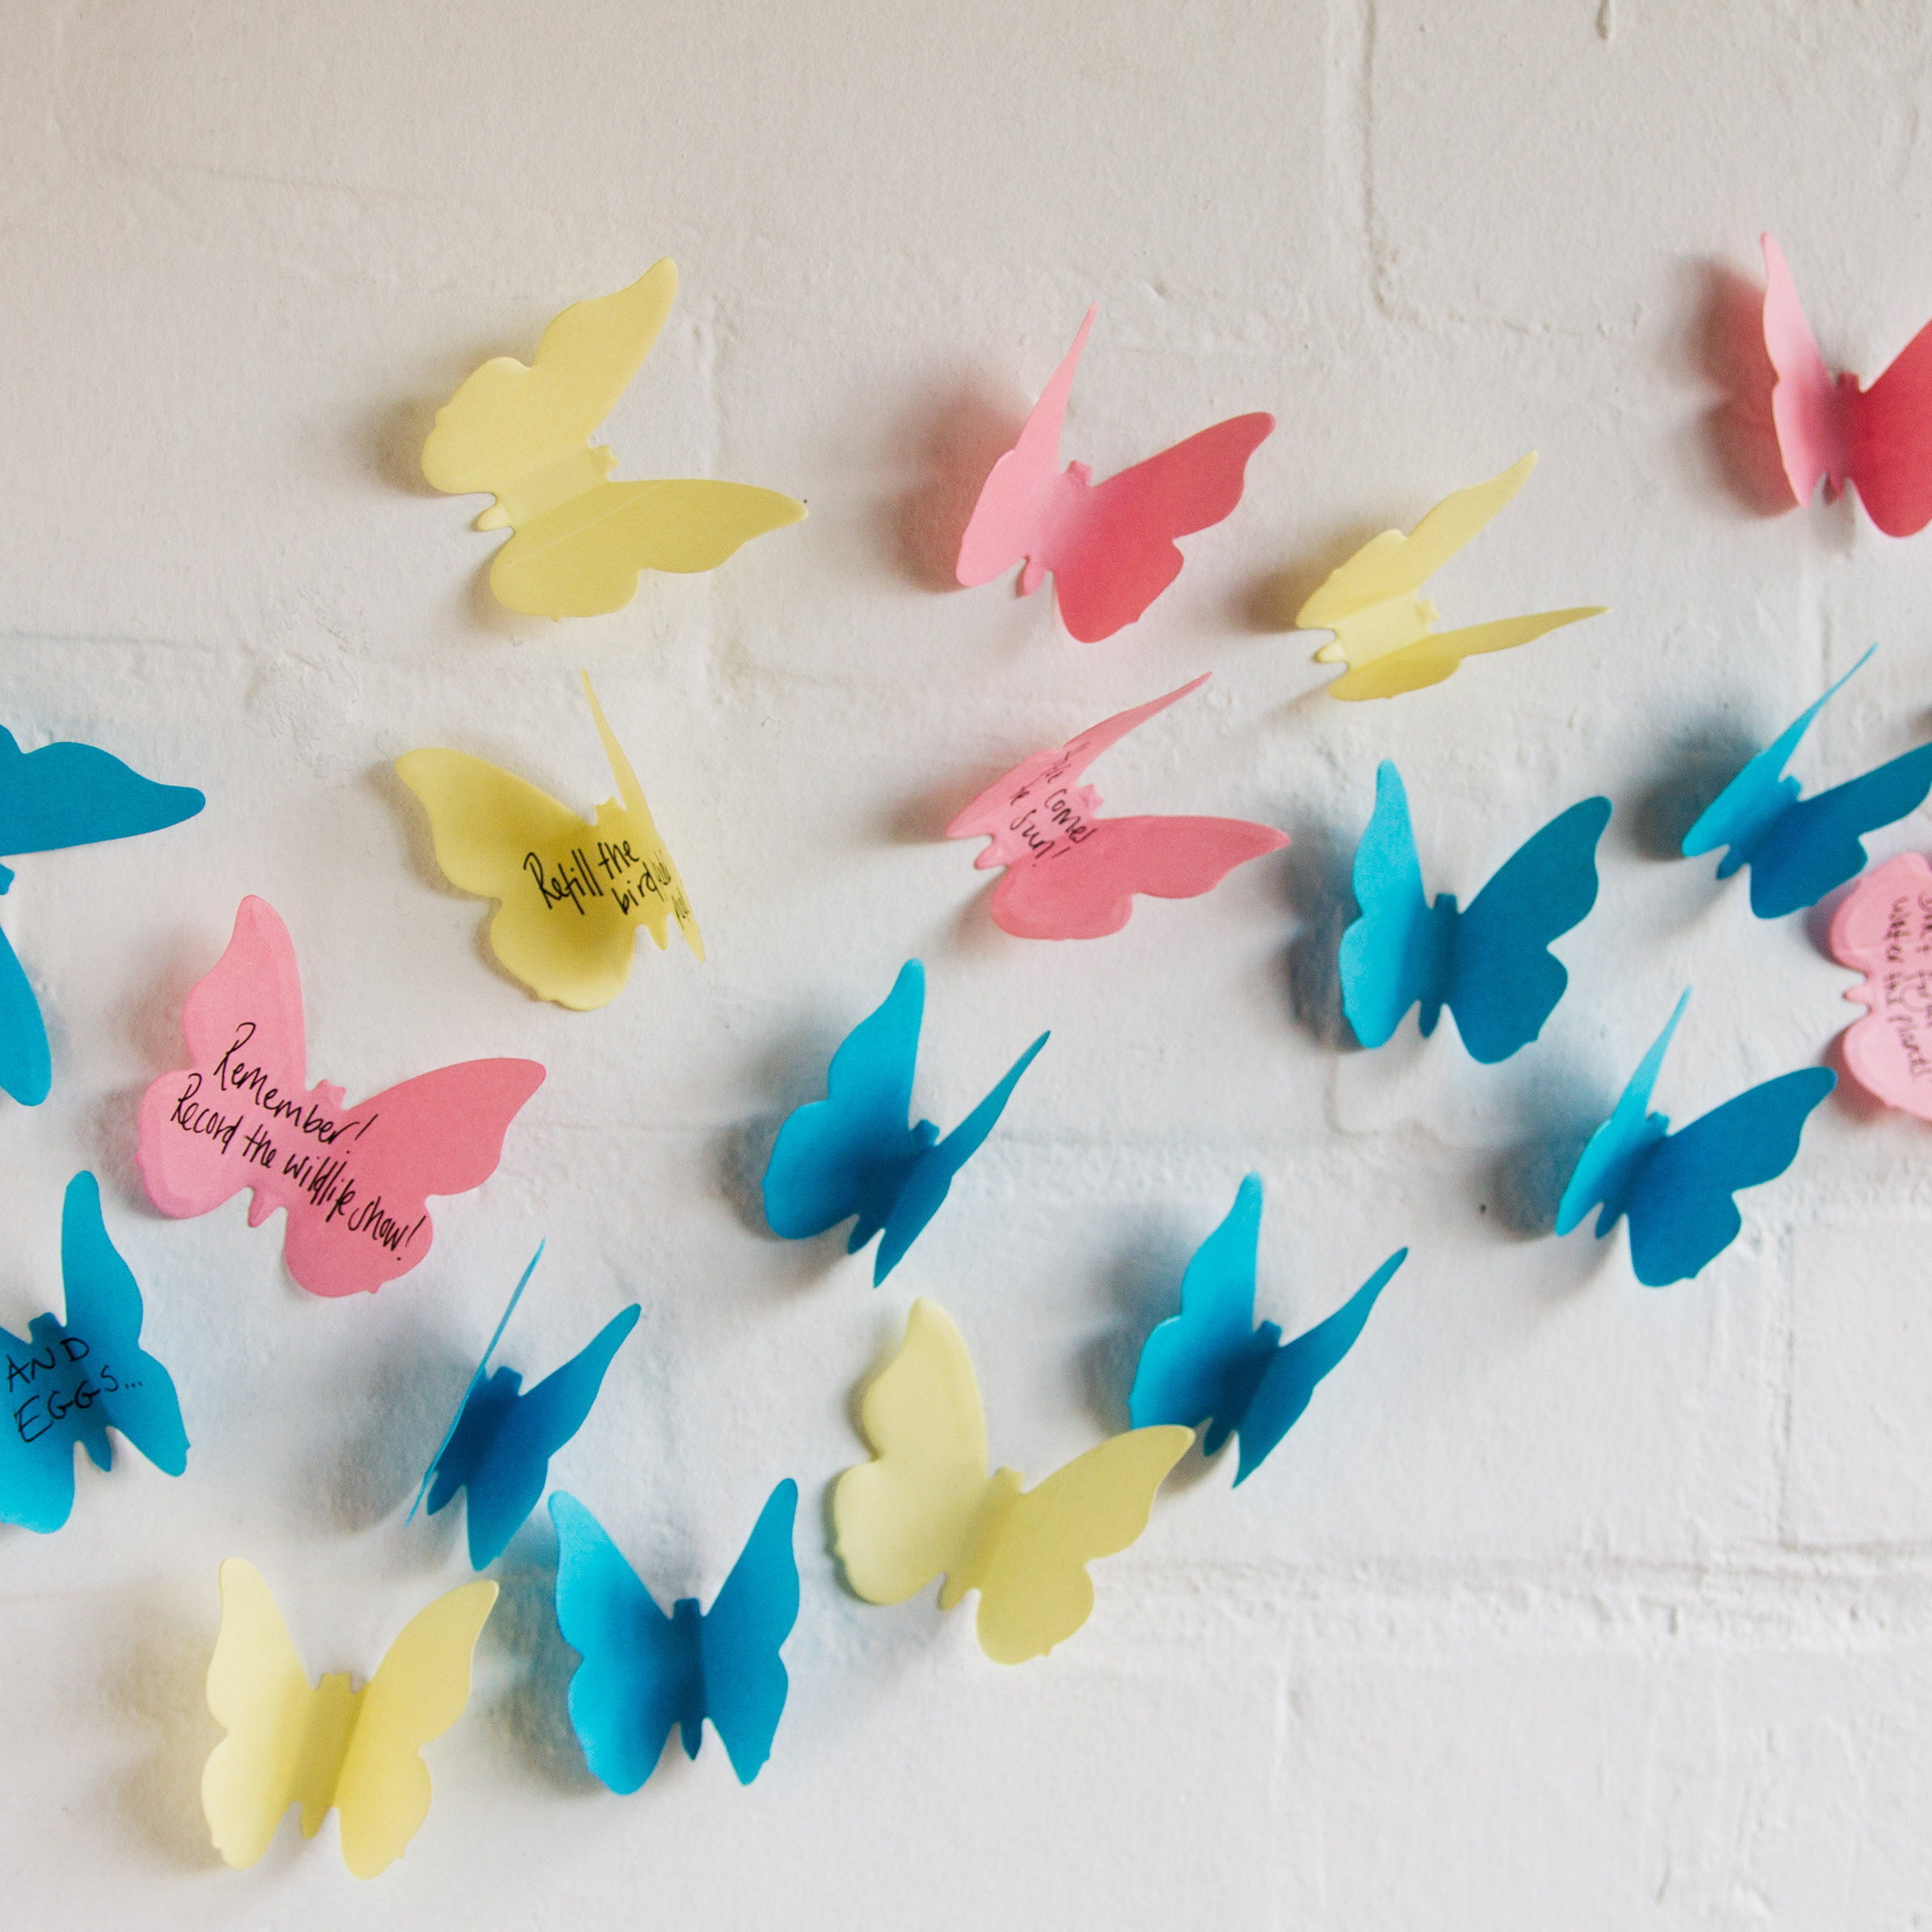 Butterfly sticky notes on a wall with memos